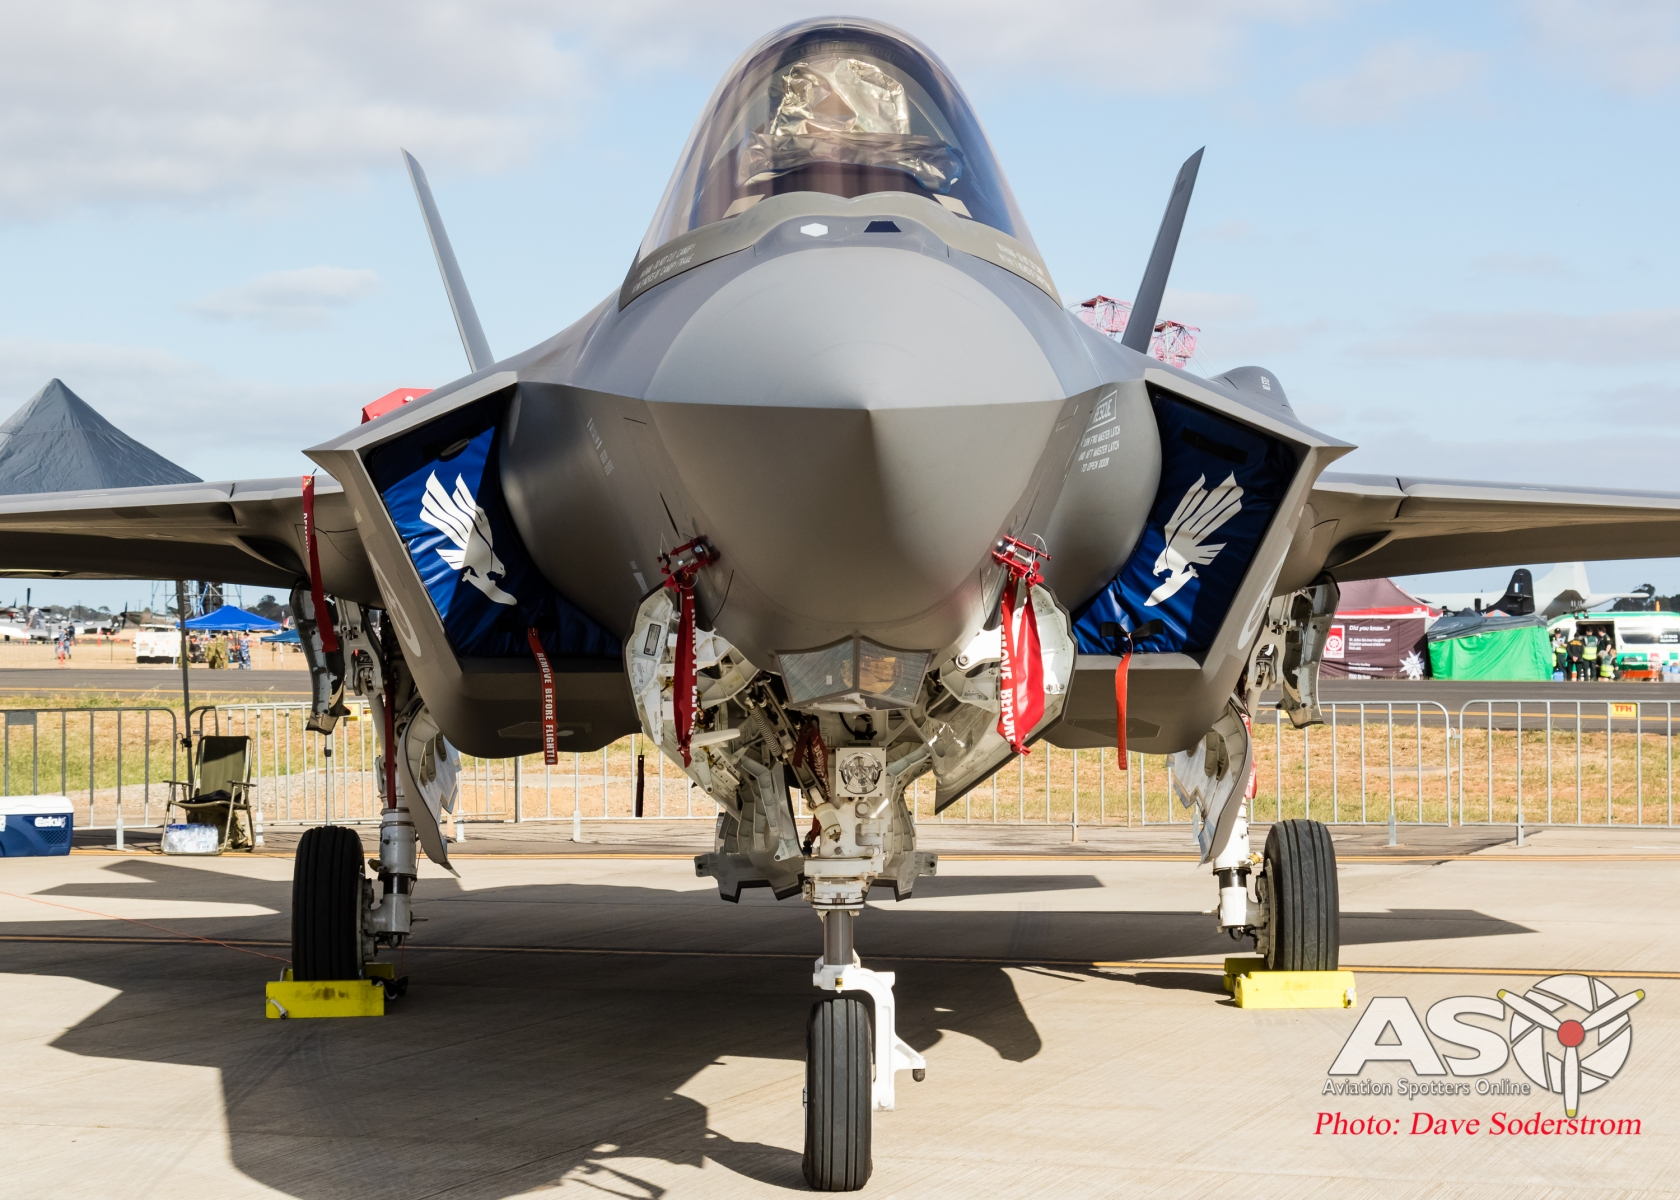 1_ASO-EDN-Airshow-2019-116-1-of-1